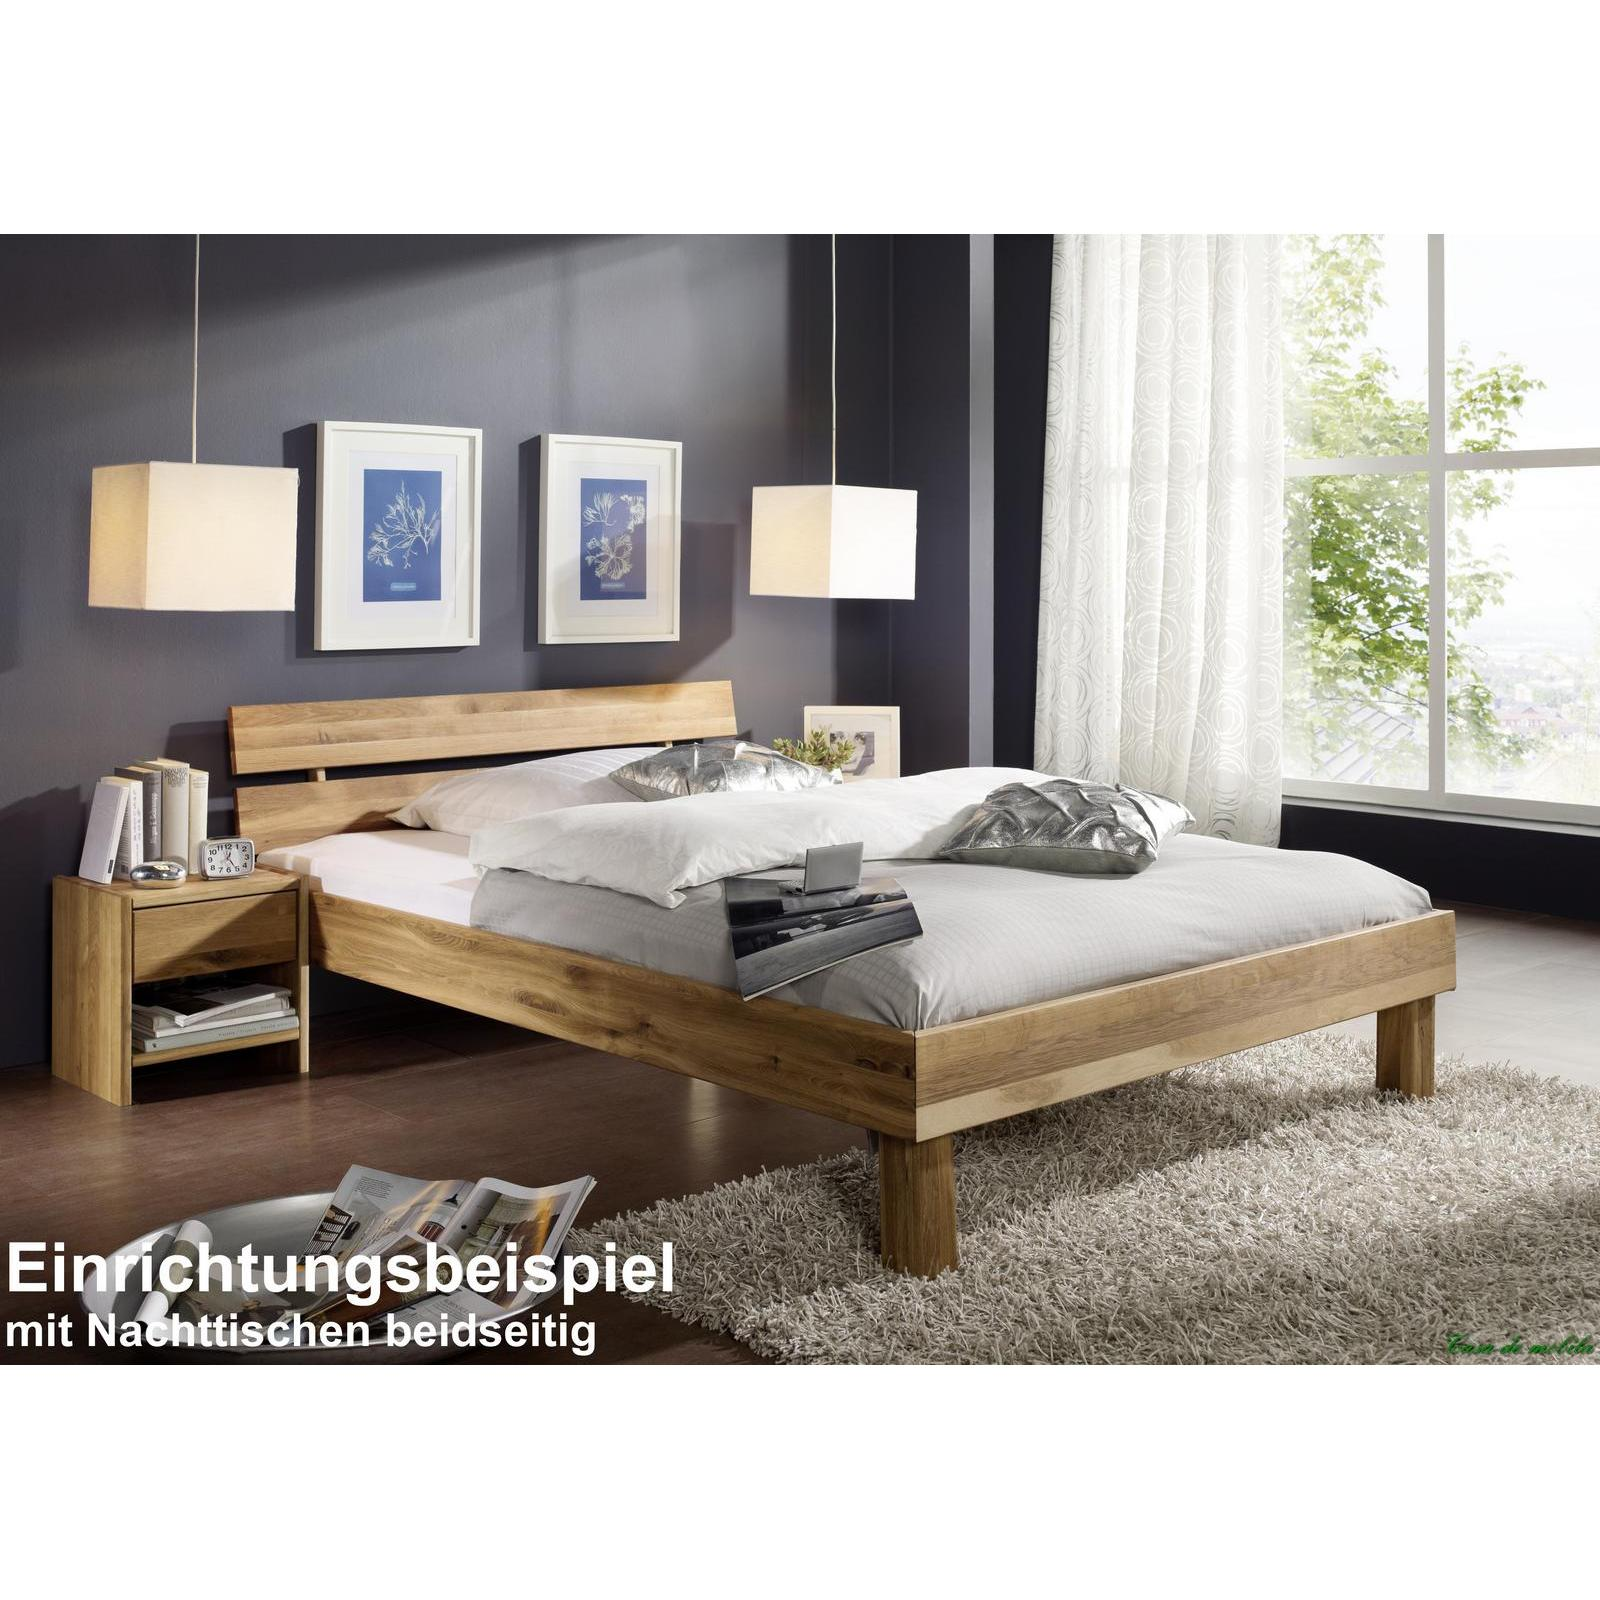 massivholz doppelbett mit schubladen eiche massiv bett. Black Bedroom Furniture Sets. Home Design Ideas